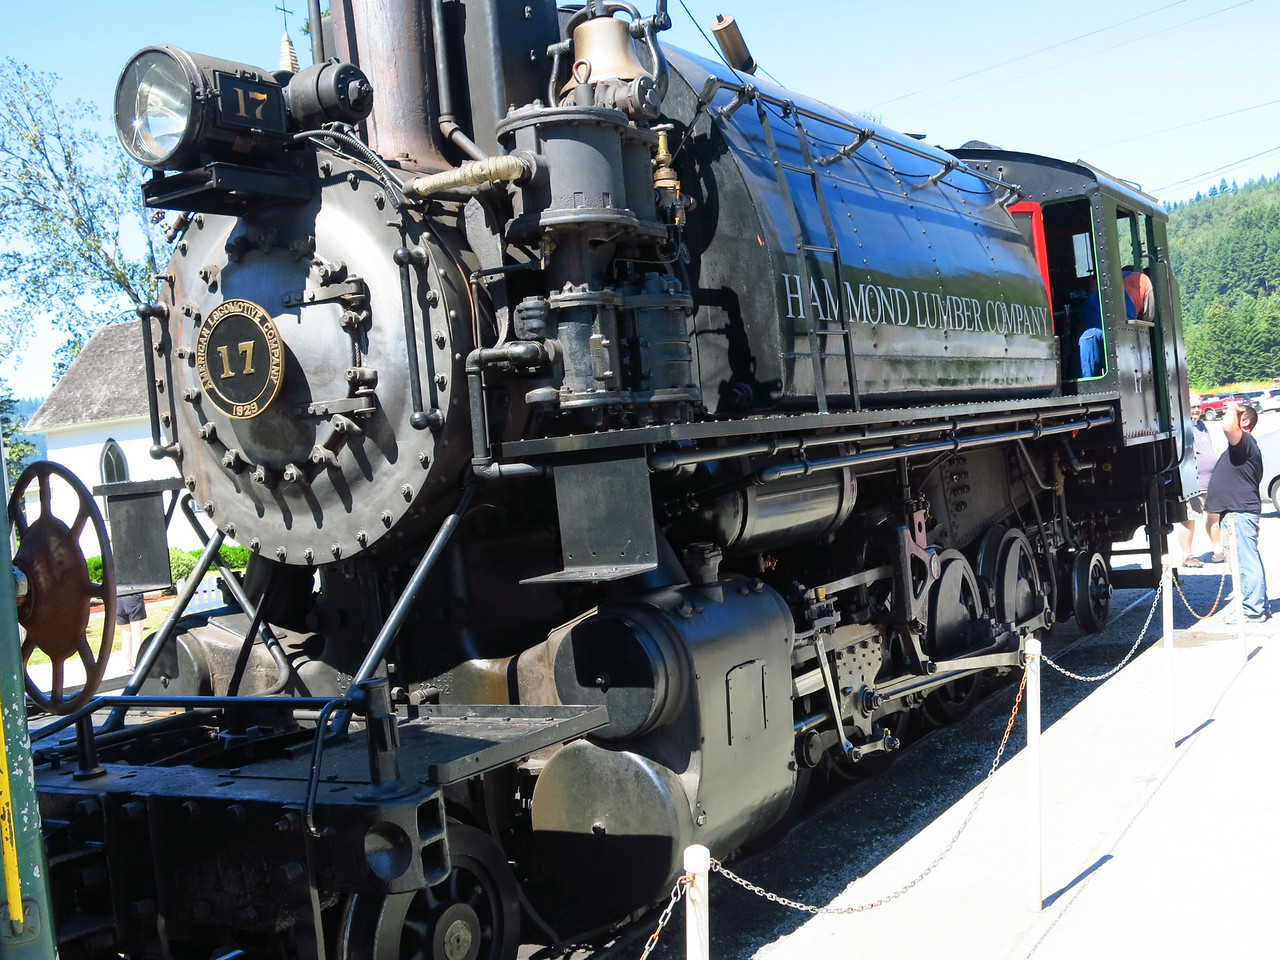 #17 steam locomotive